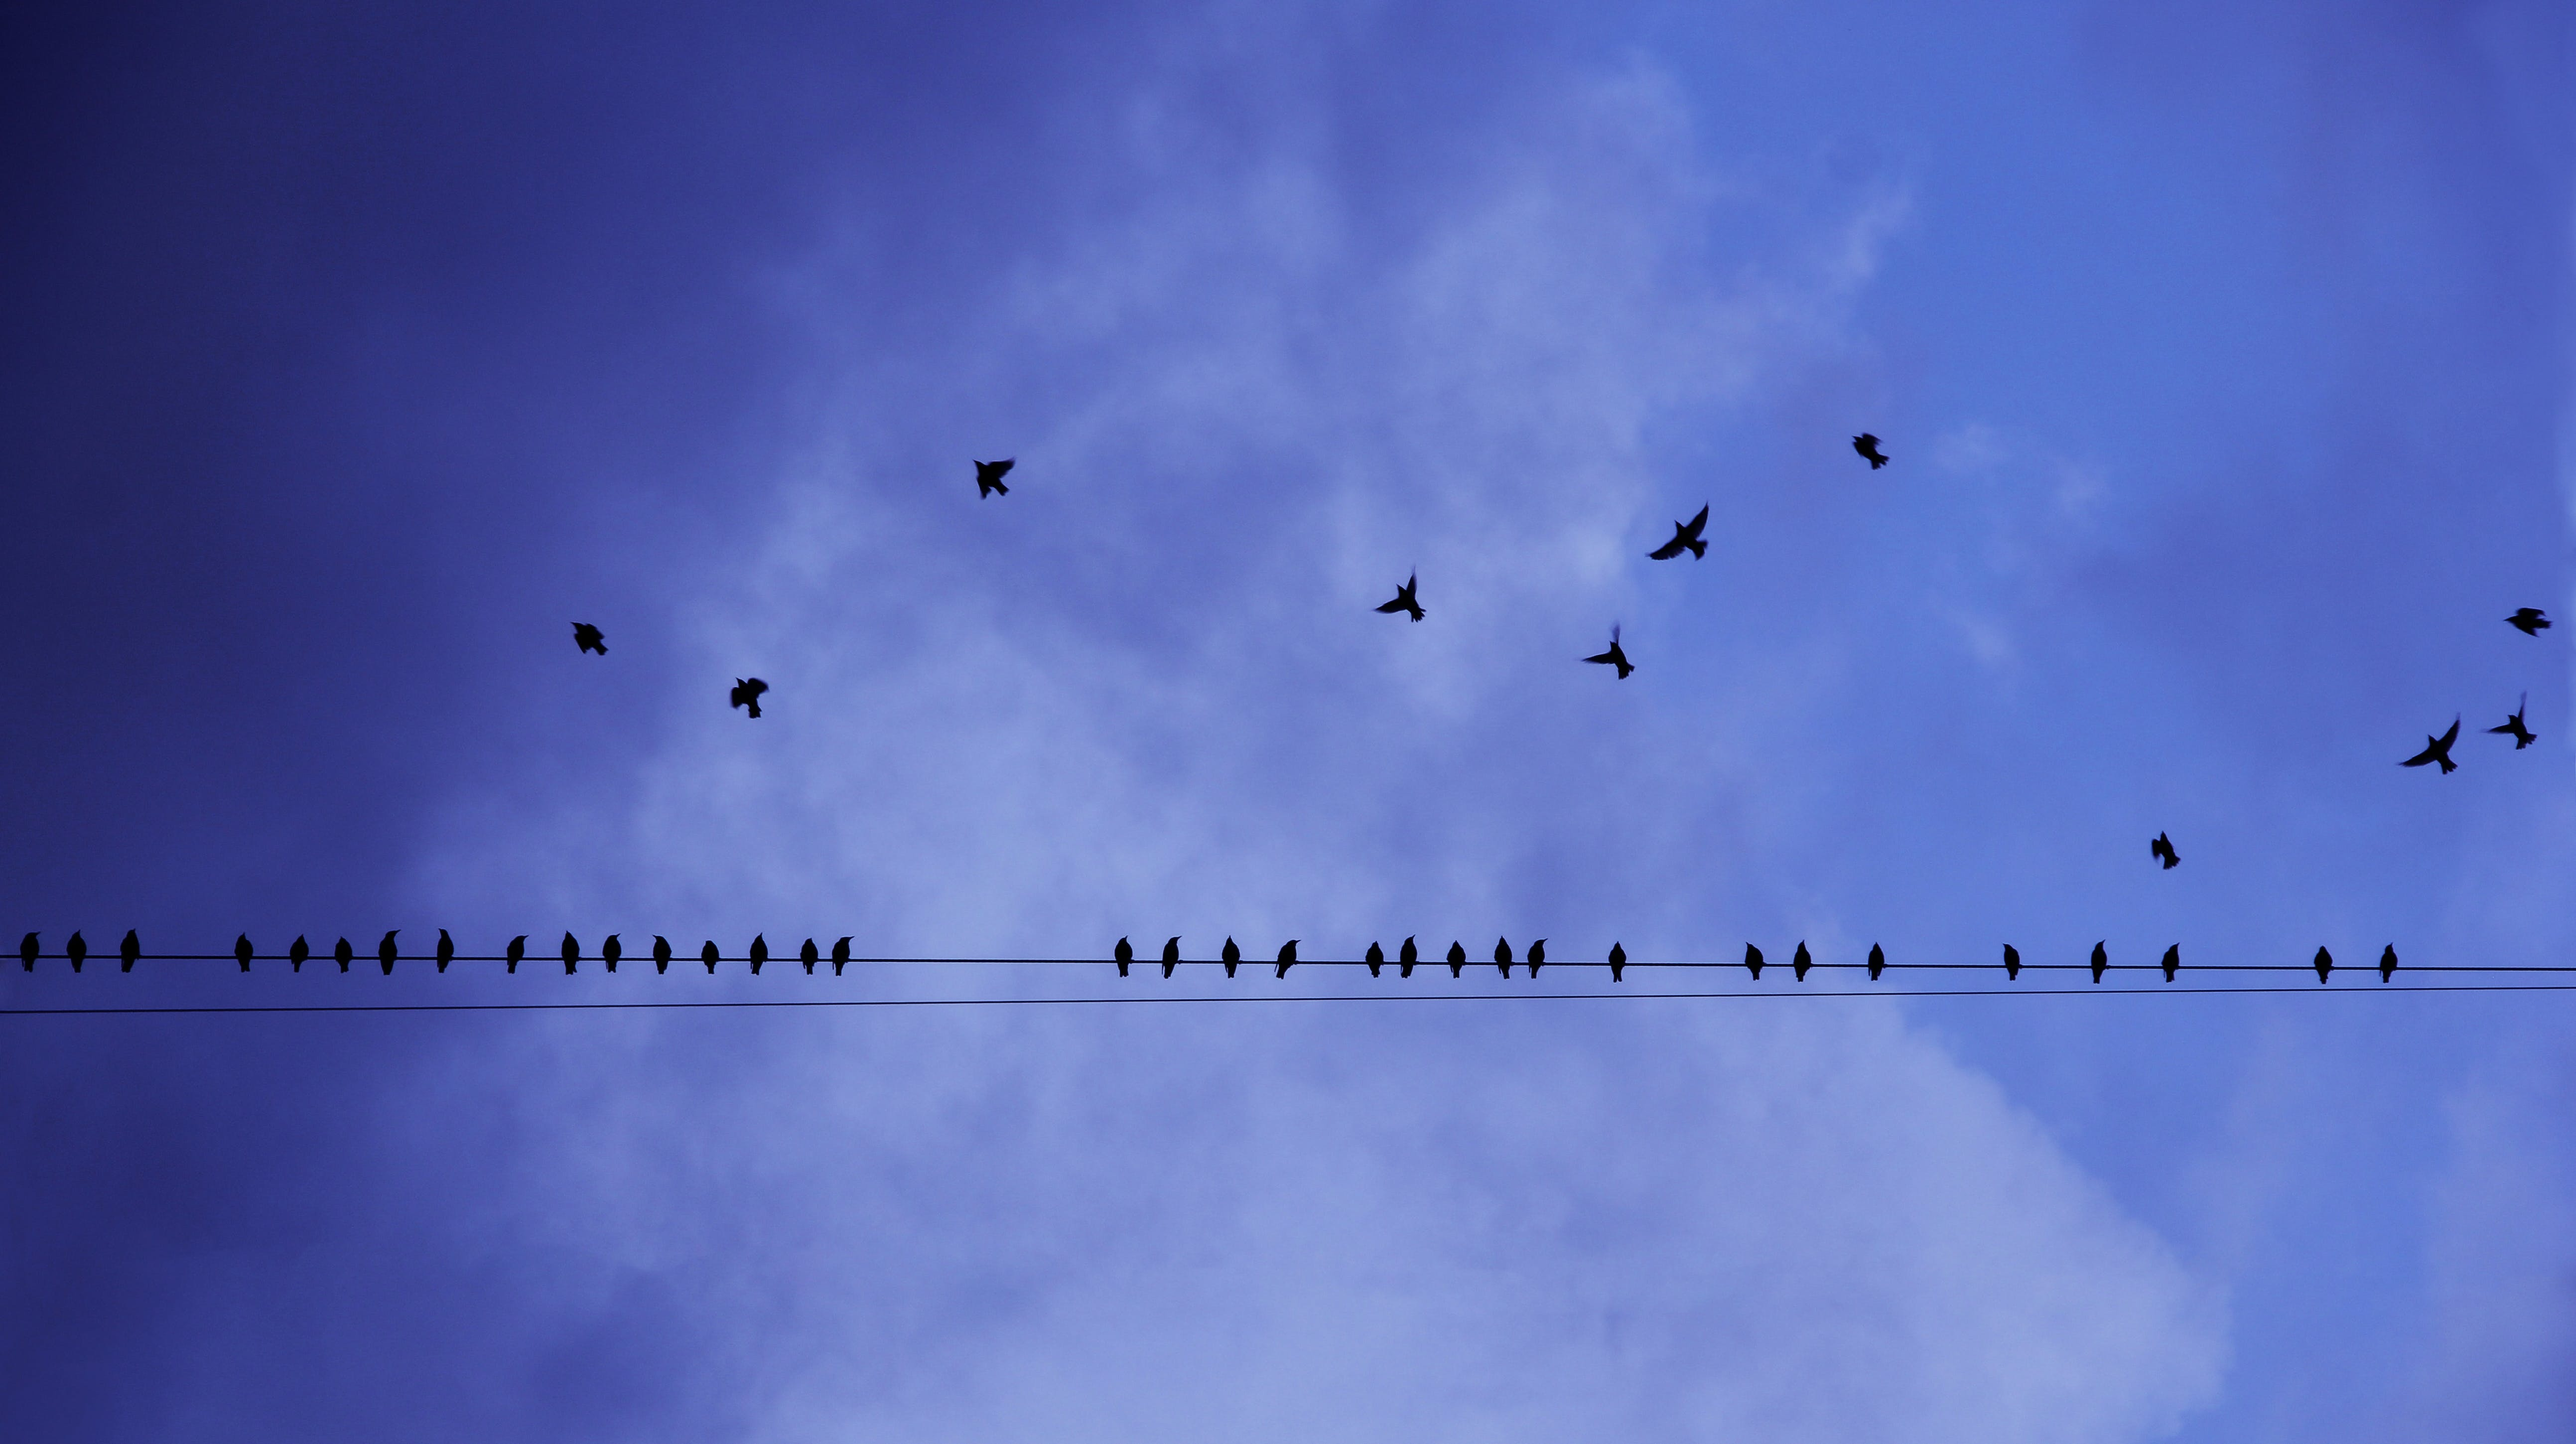 Silhouette Photography of Birds in Flight and Perched on Electricity Line